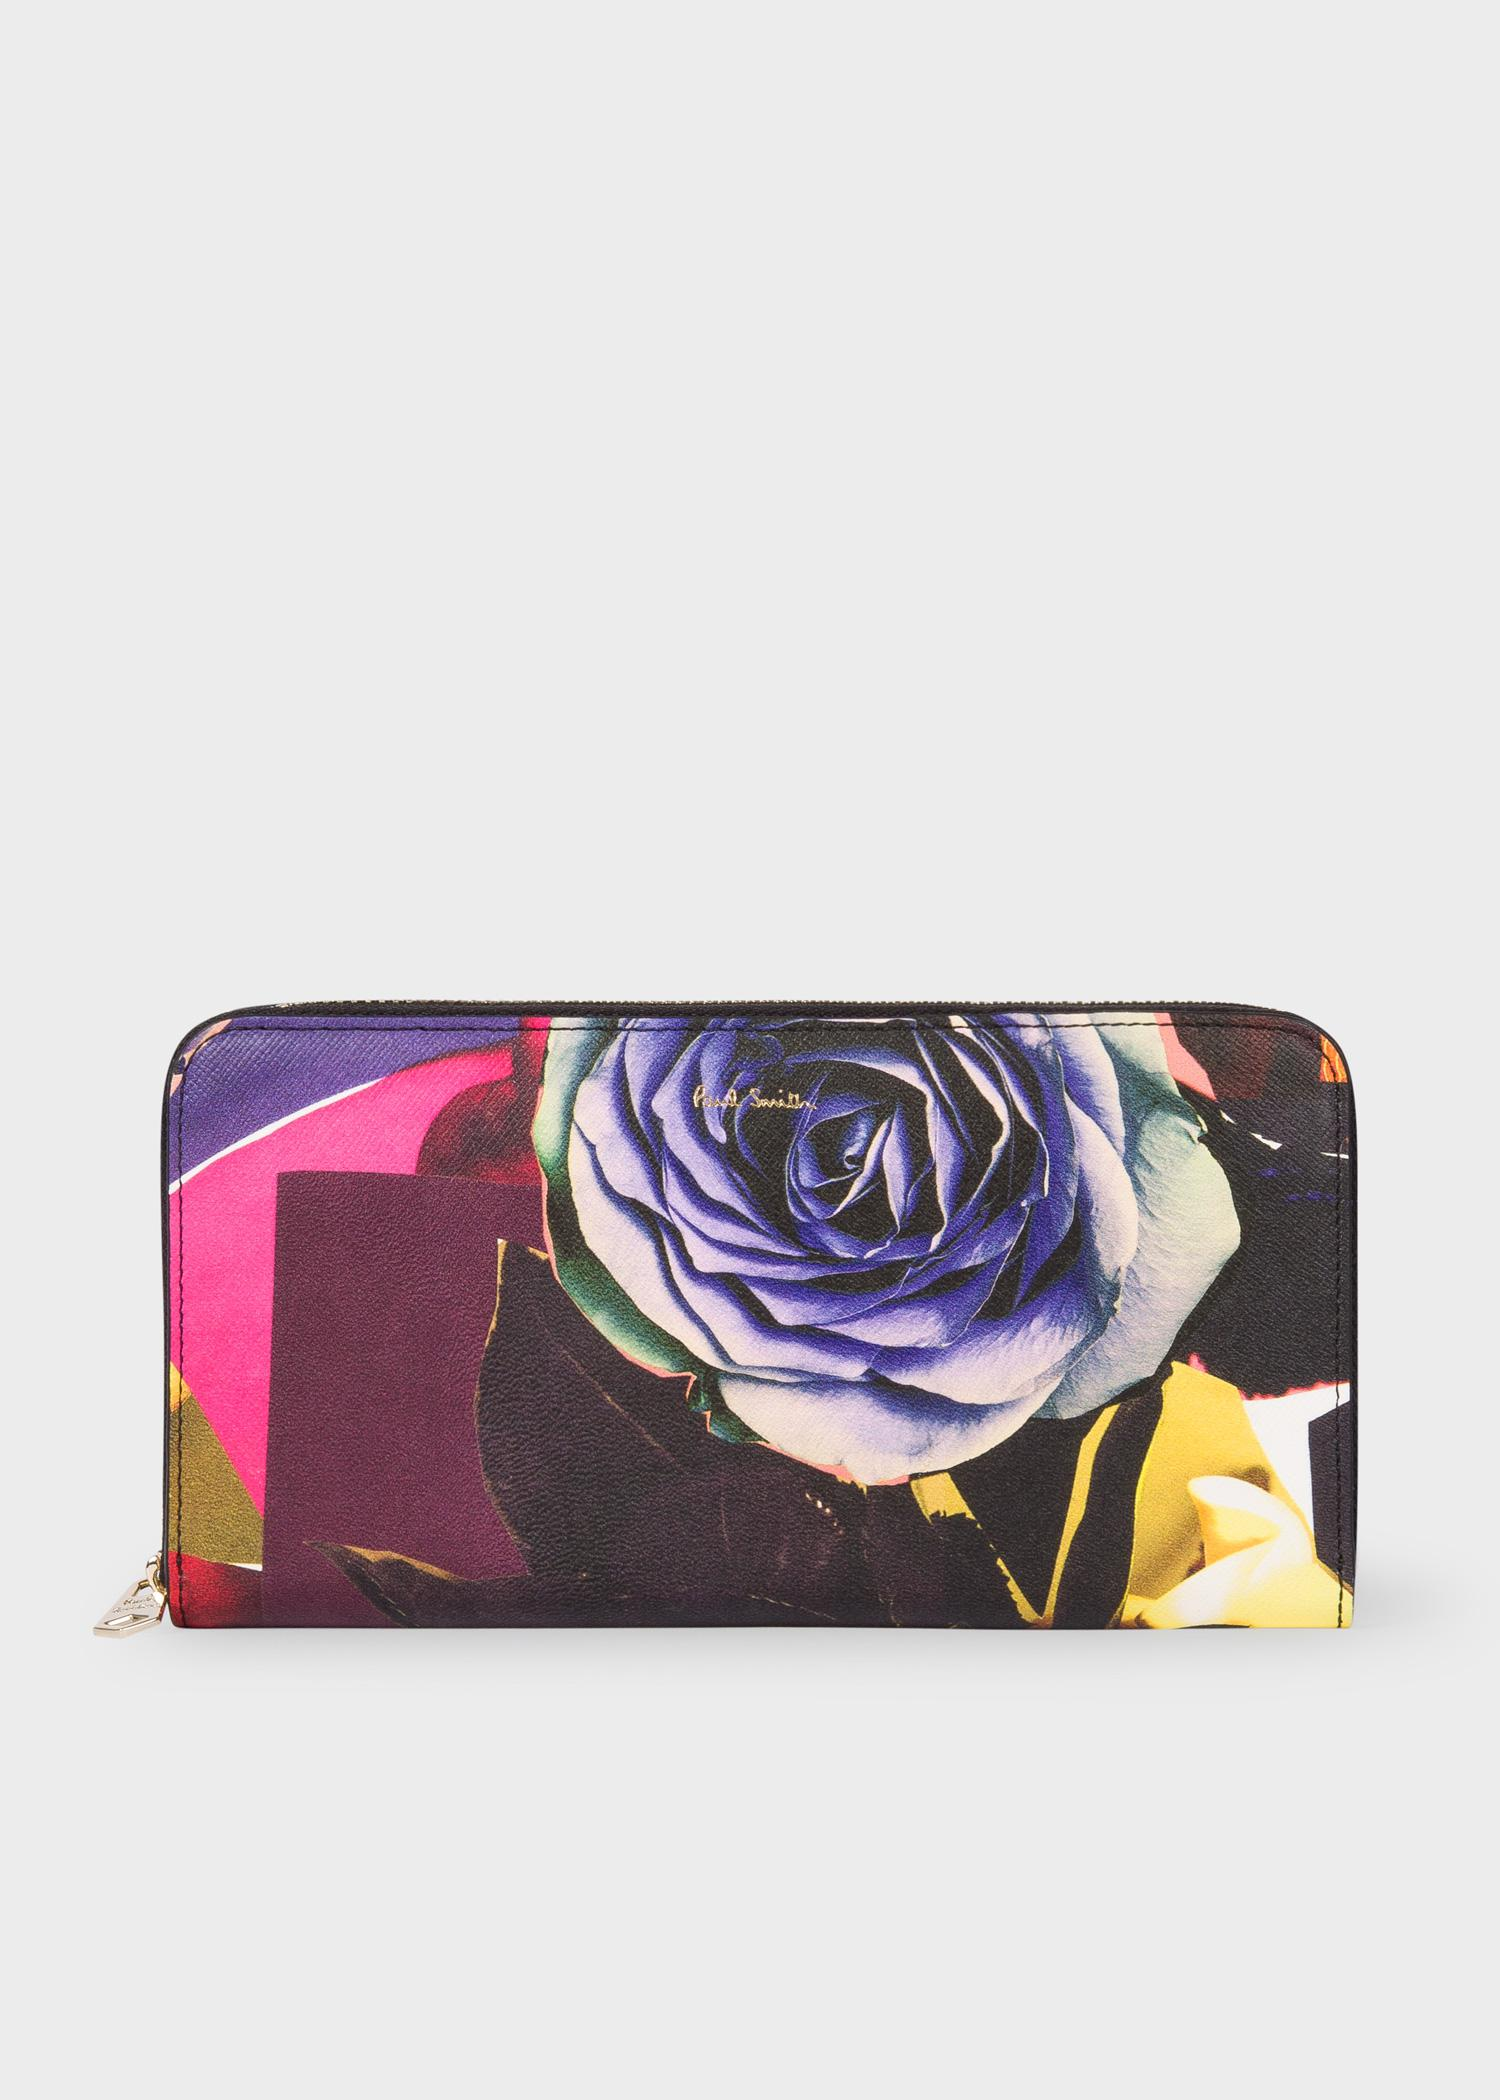 Multicolor Collage Rose Pouch Paul Smith Buy Cheap Exclusive Cheap Wide Range Of Sale Online Cheap Cost Cheap Price 100% Guaranteed Cheap Price 1KFv1YVI